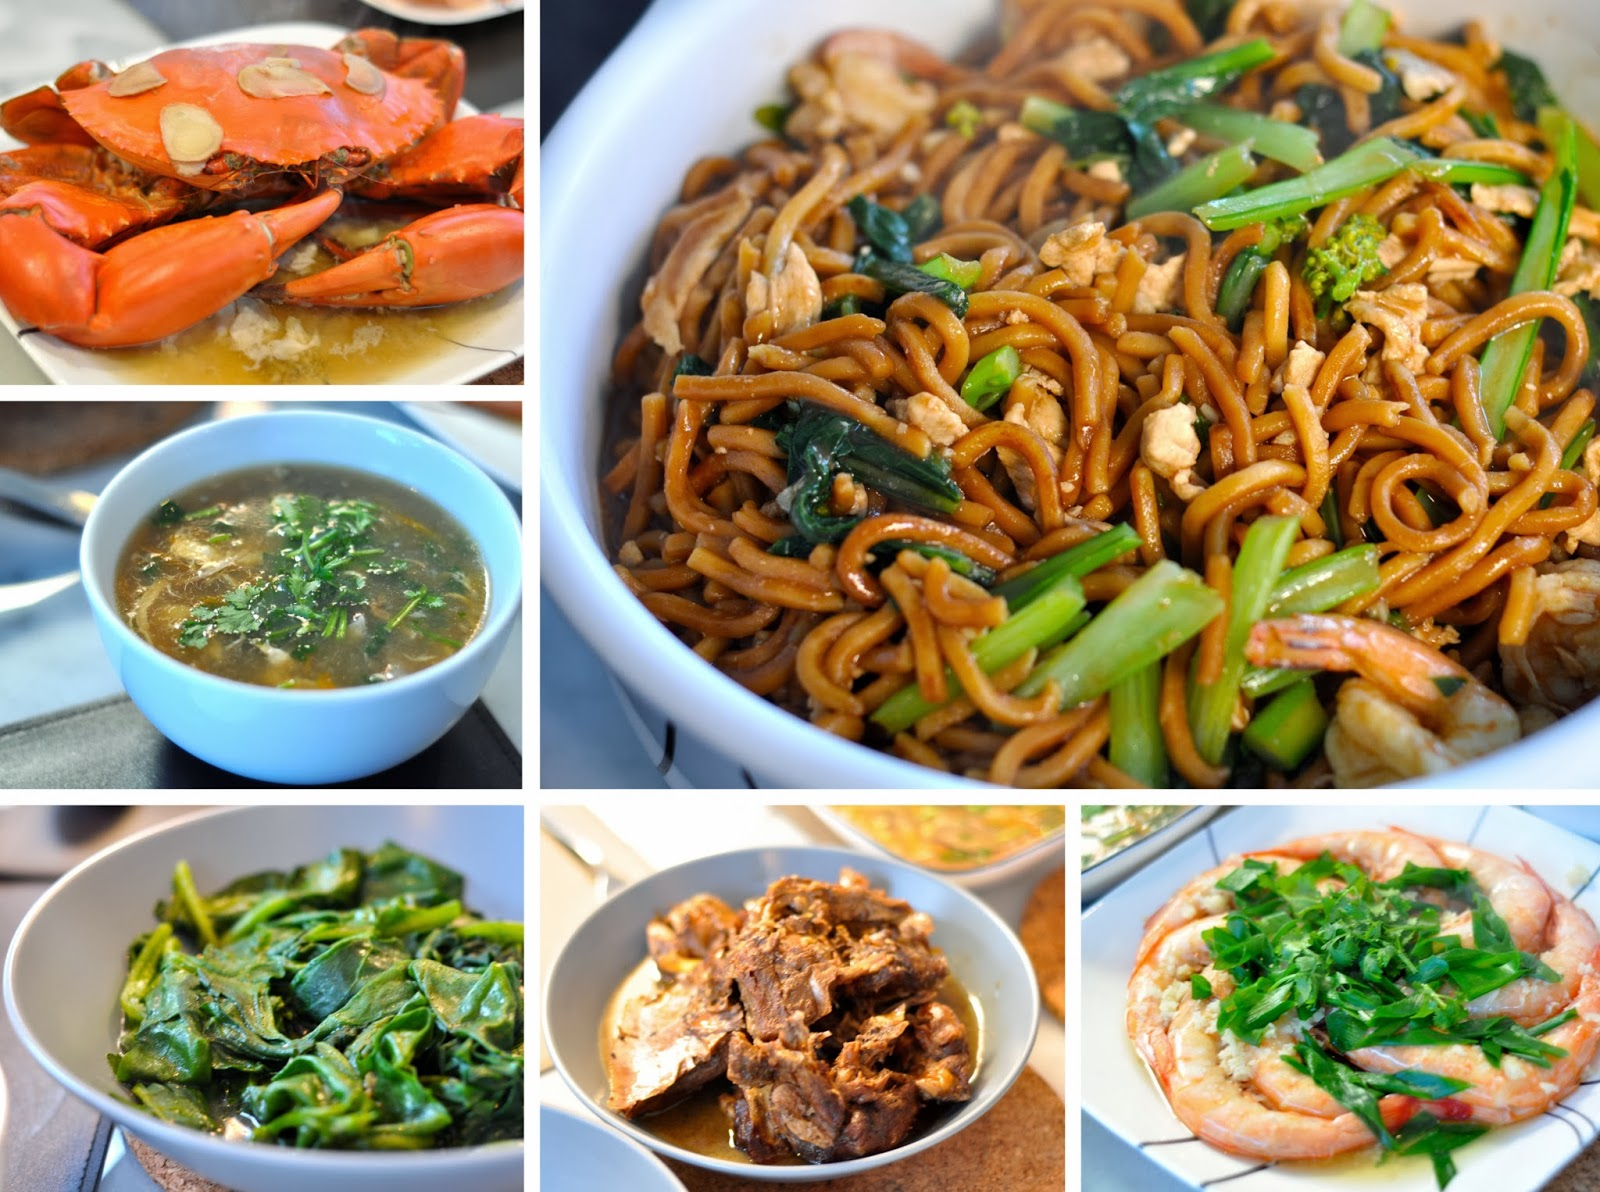 chao zhu mian foochow noodles crab sea cucmber soup di huang miao ceylon spinach lo ack braised duck prawns